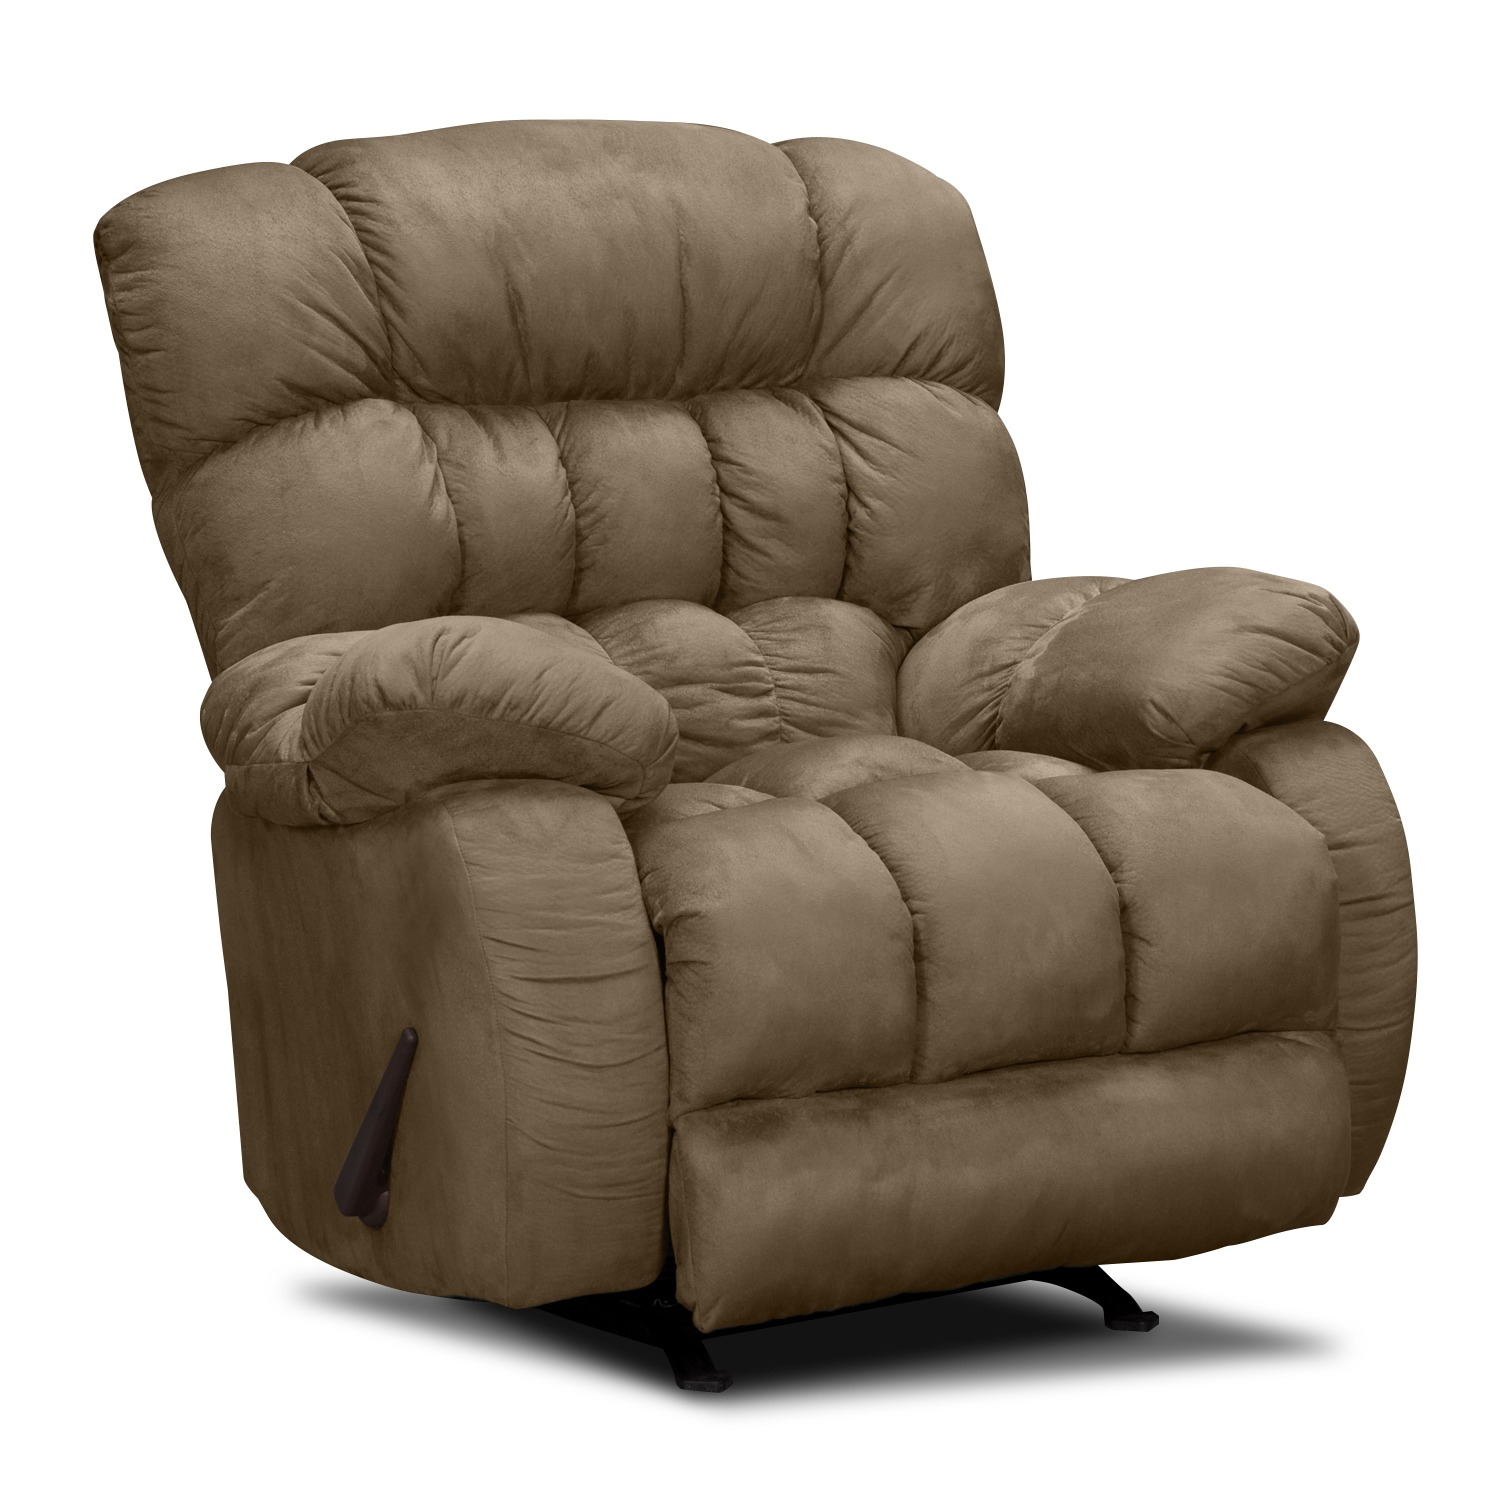 Sonic Rocker Recliner | Value City Furniture and Mattresses